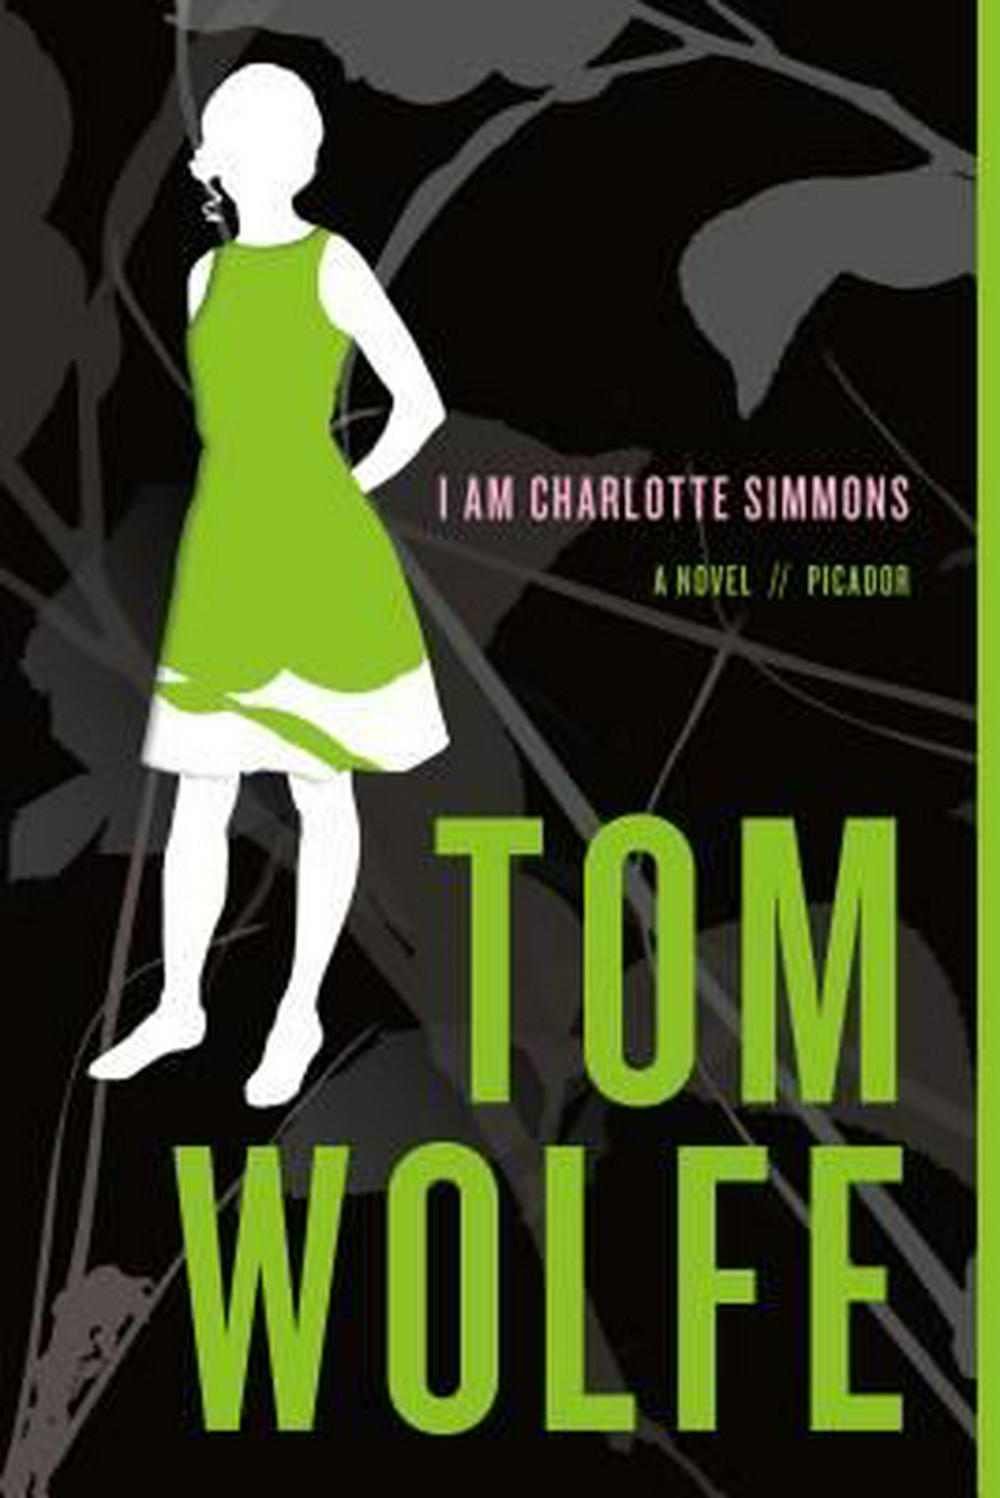 I Am Charlotte Simmons by Tom Wolfe, ISBN: 9780312424442